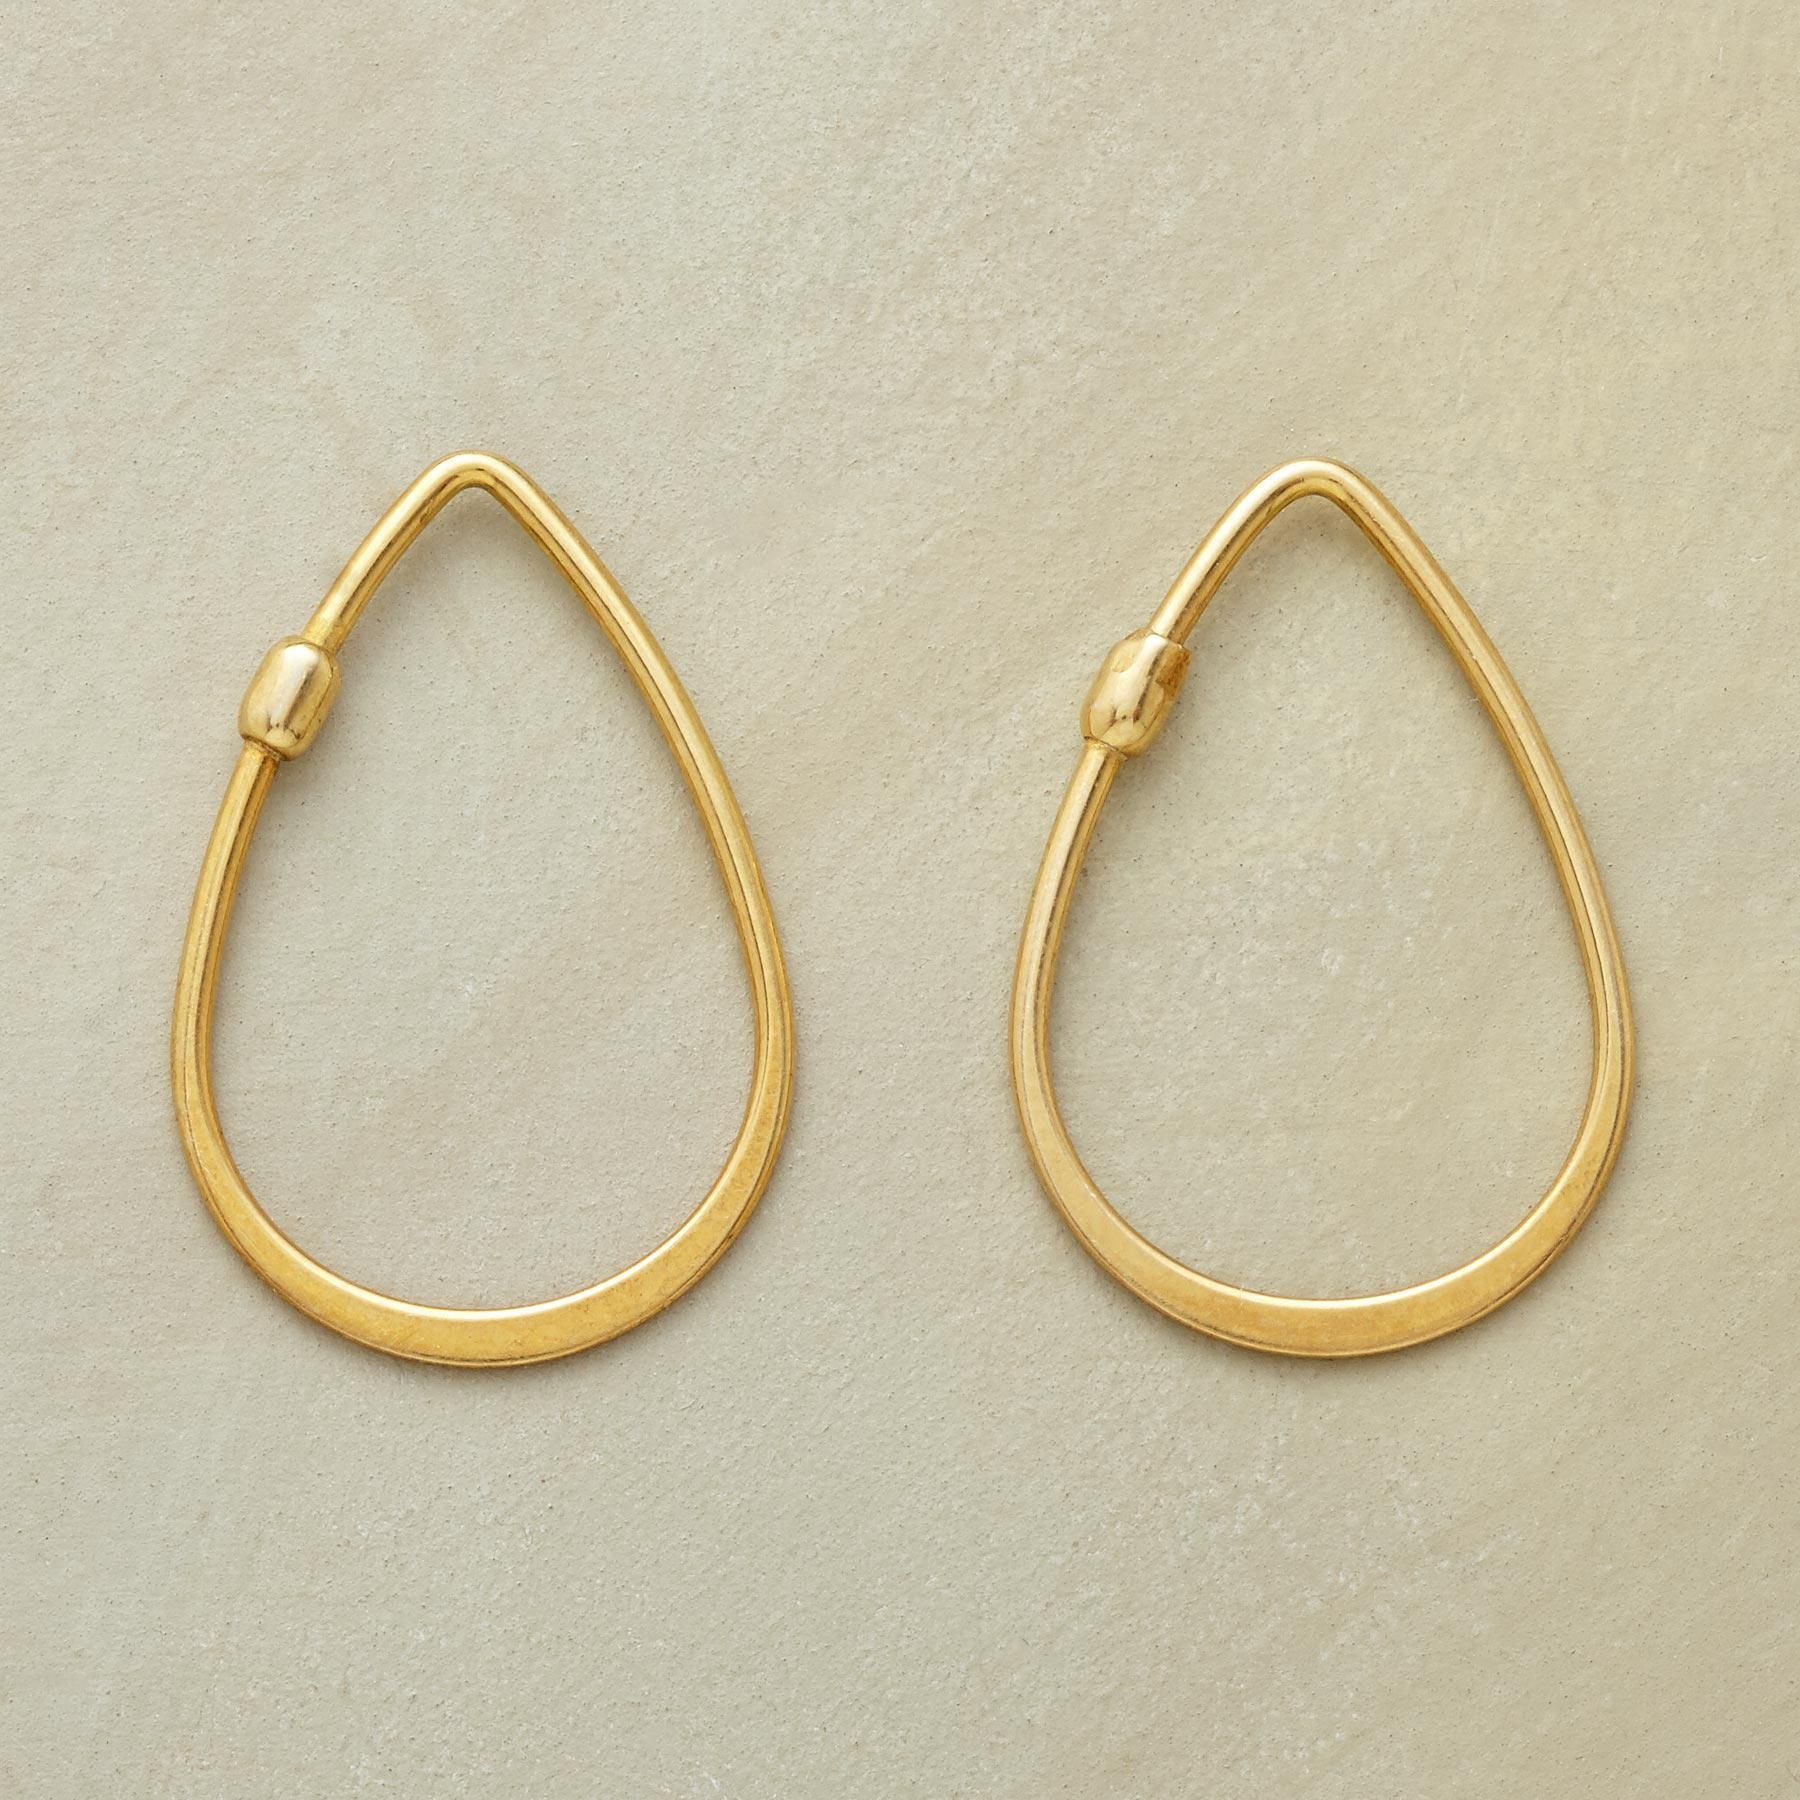 e12eaafc7 18KT GOLD PLATE TEARDROP HOOPS -- Simply elegant forged 18kt gold plate  teardrop hoop earrings level out as they round the curve. Self-locking with  one end ...